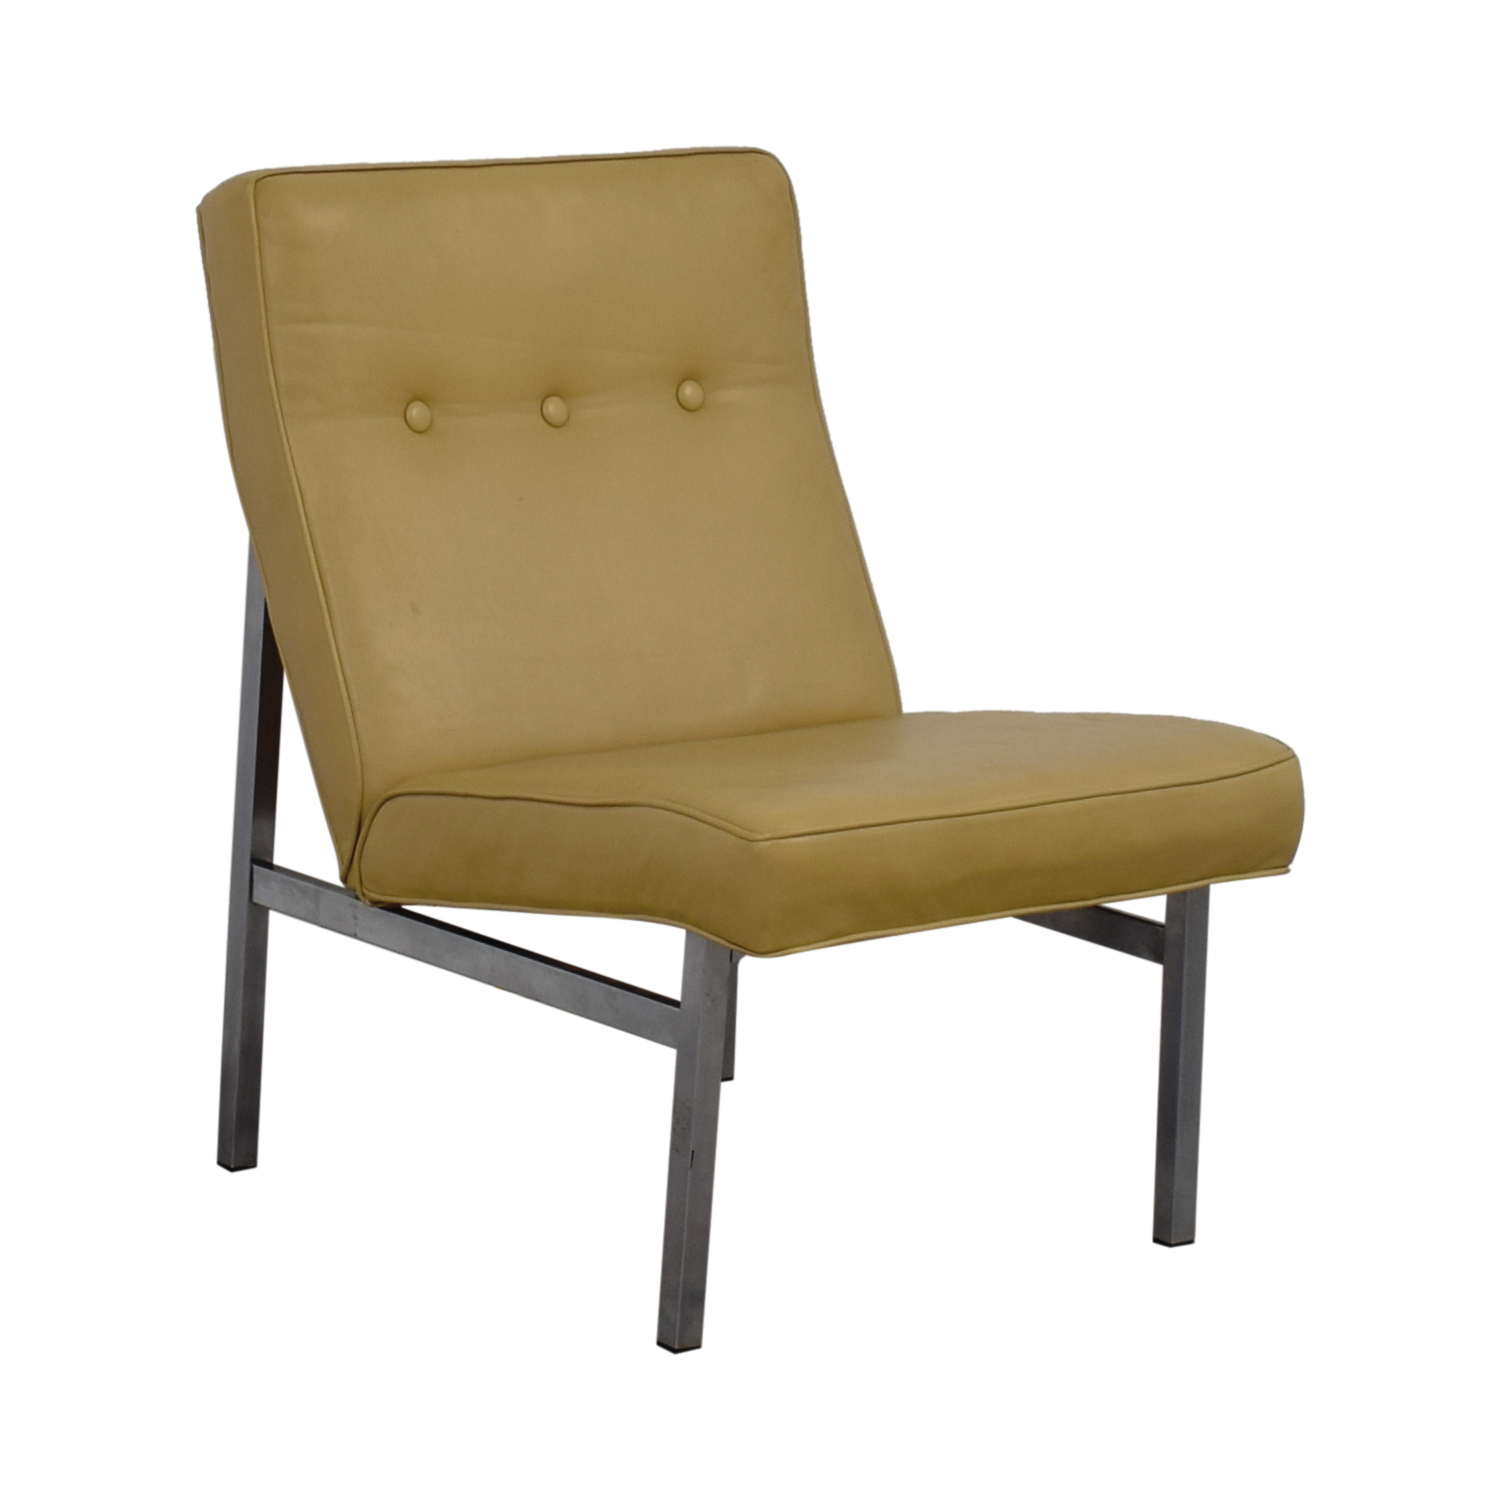 price of chair walter in from aluminum chairs knoll leather set per lounge and